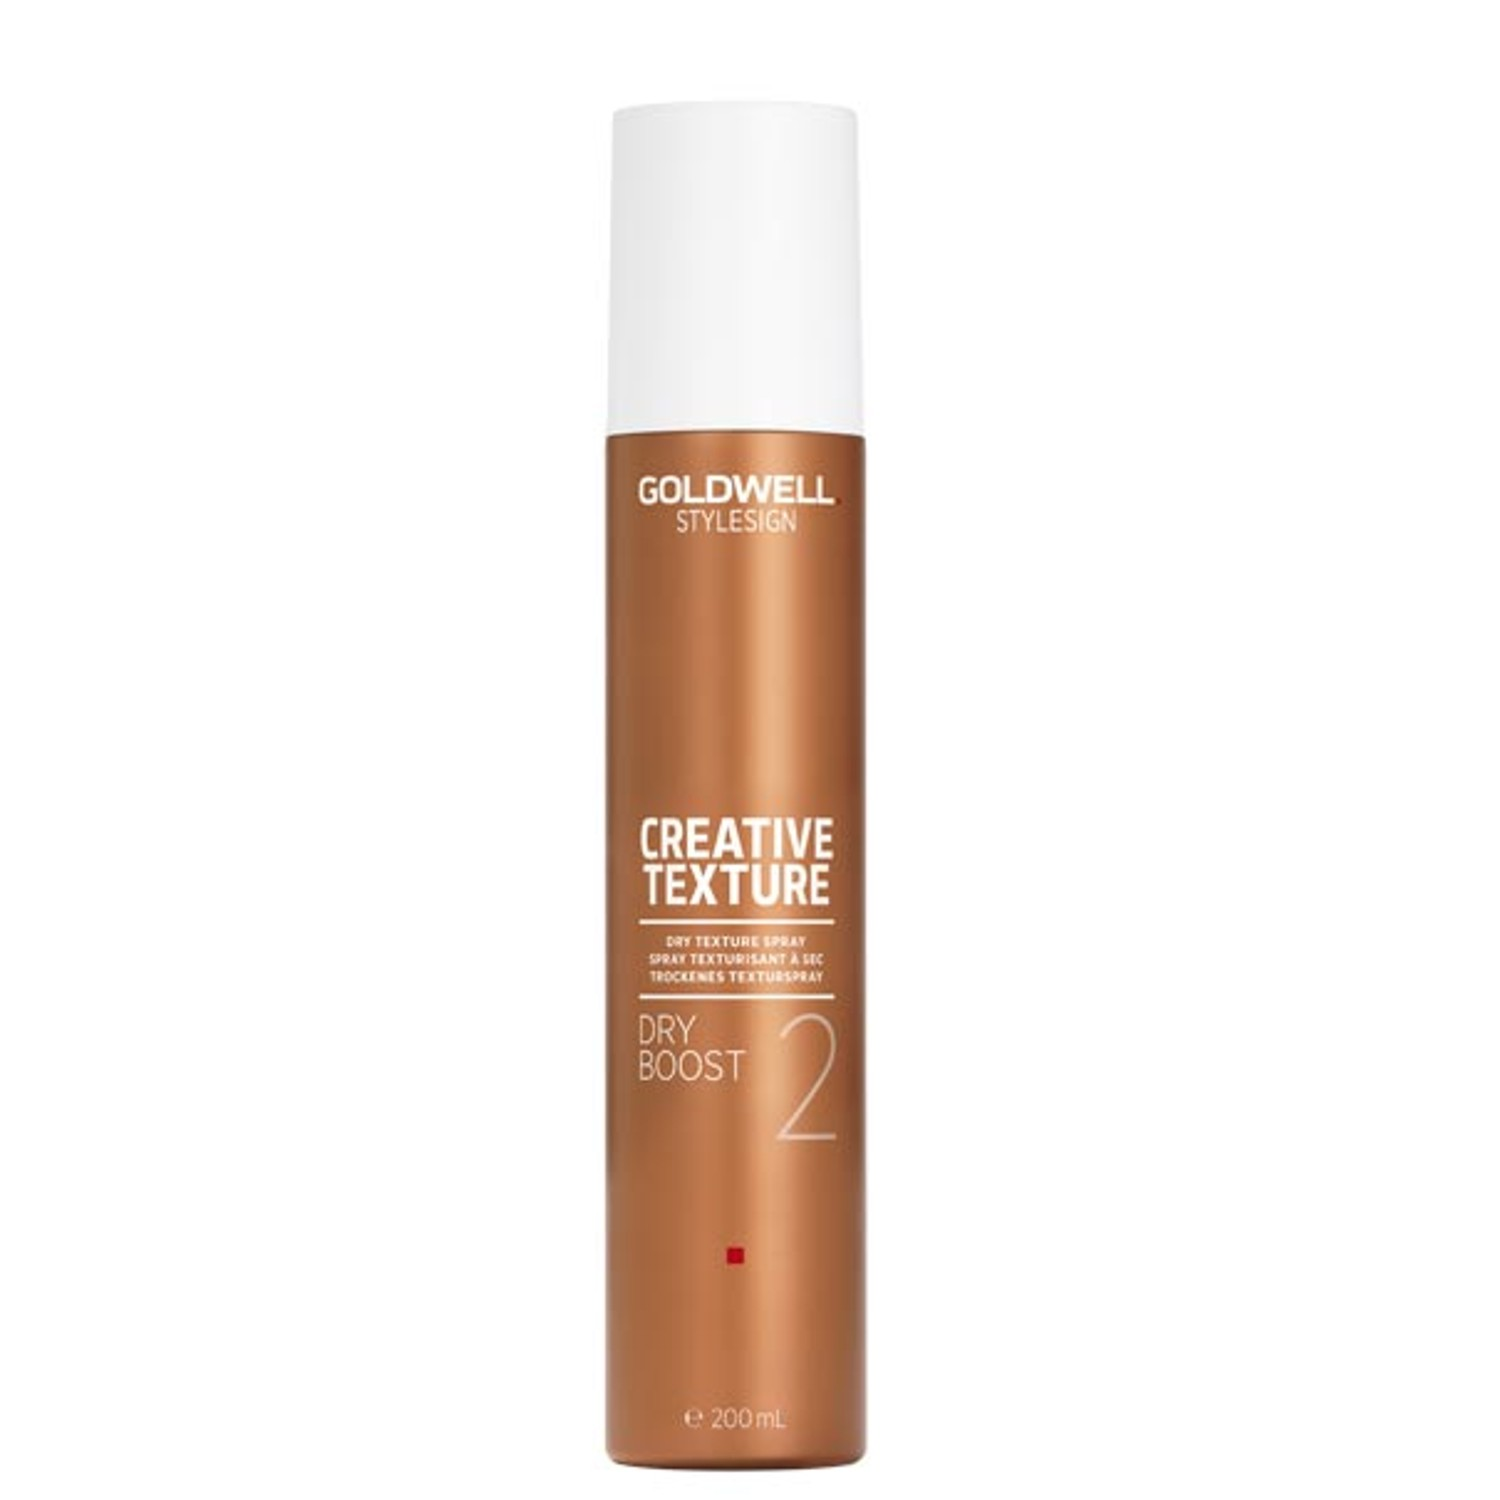 GOLDWELL Style Sign Creative Texture Dry Boost 200 ml